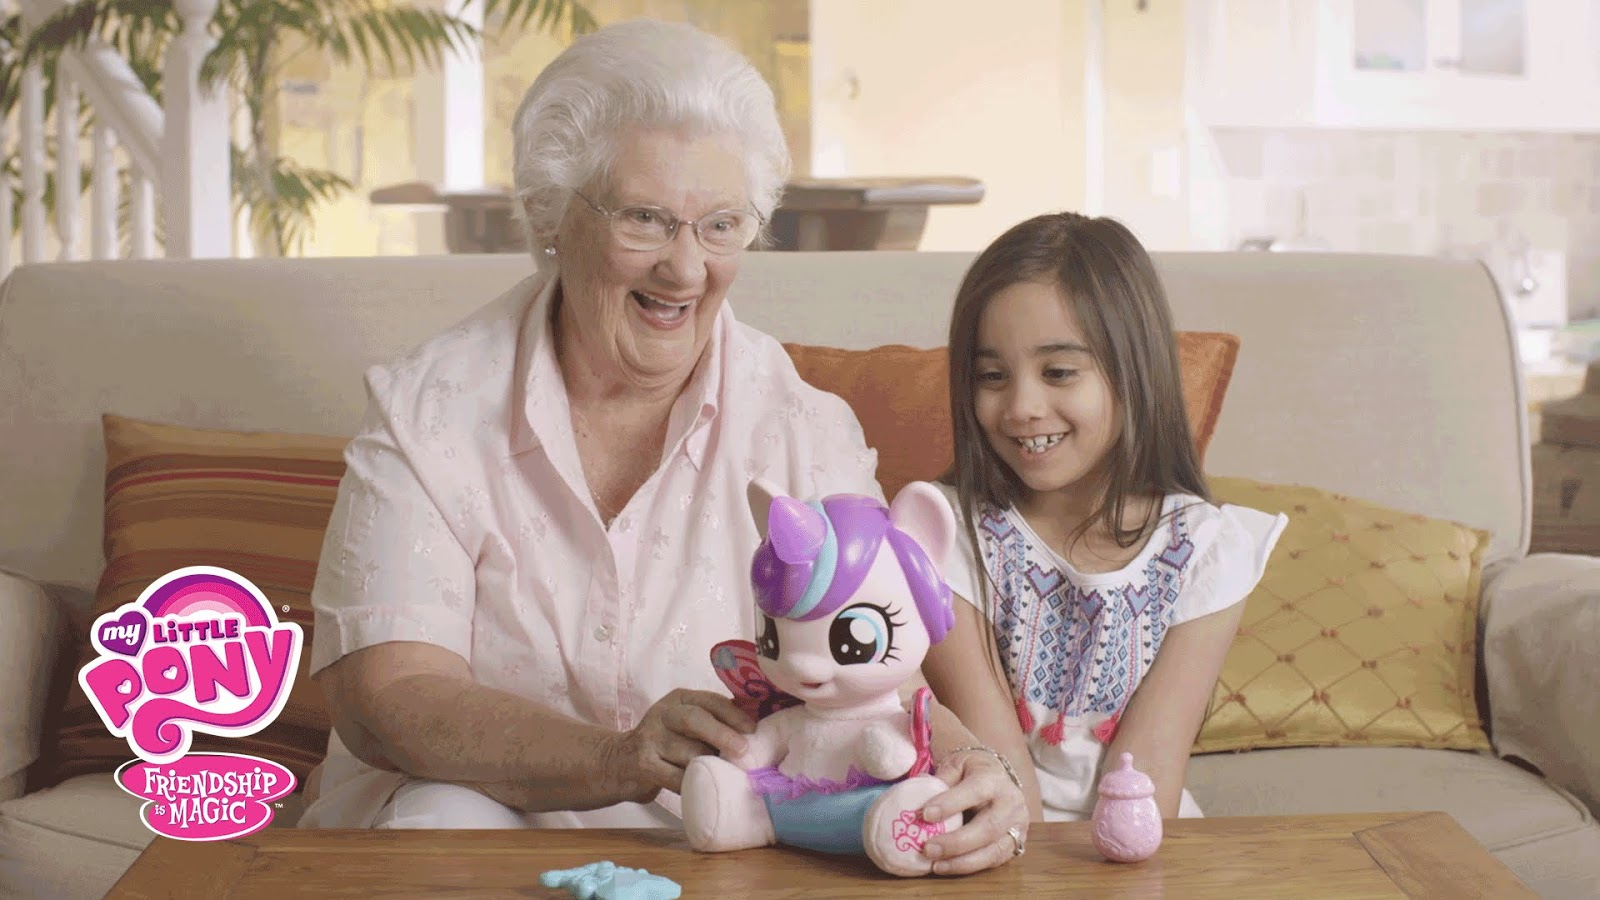 Baby Toy Commercial : Equestria daily mlp stuff my little pony flurry heart